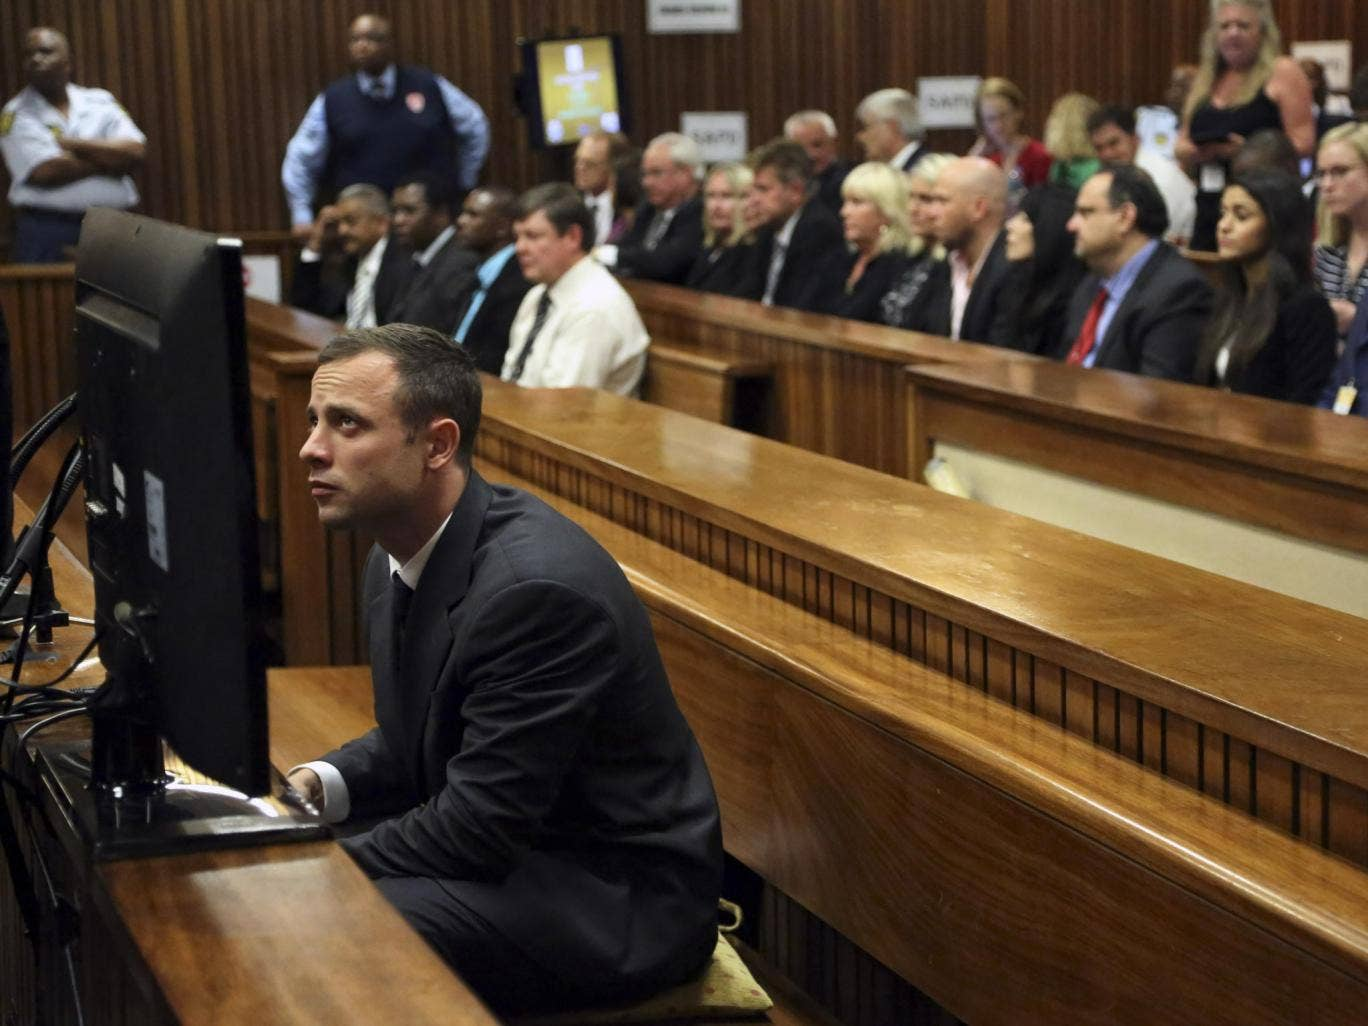 Oscar Pistorius at the Pretoria High Court in Pretoria, South Africa